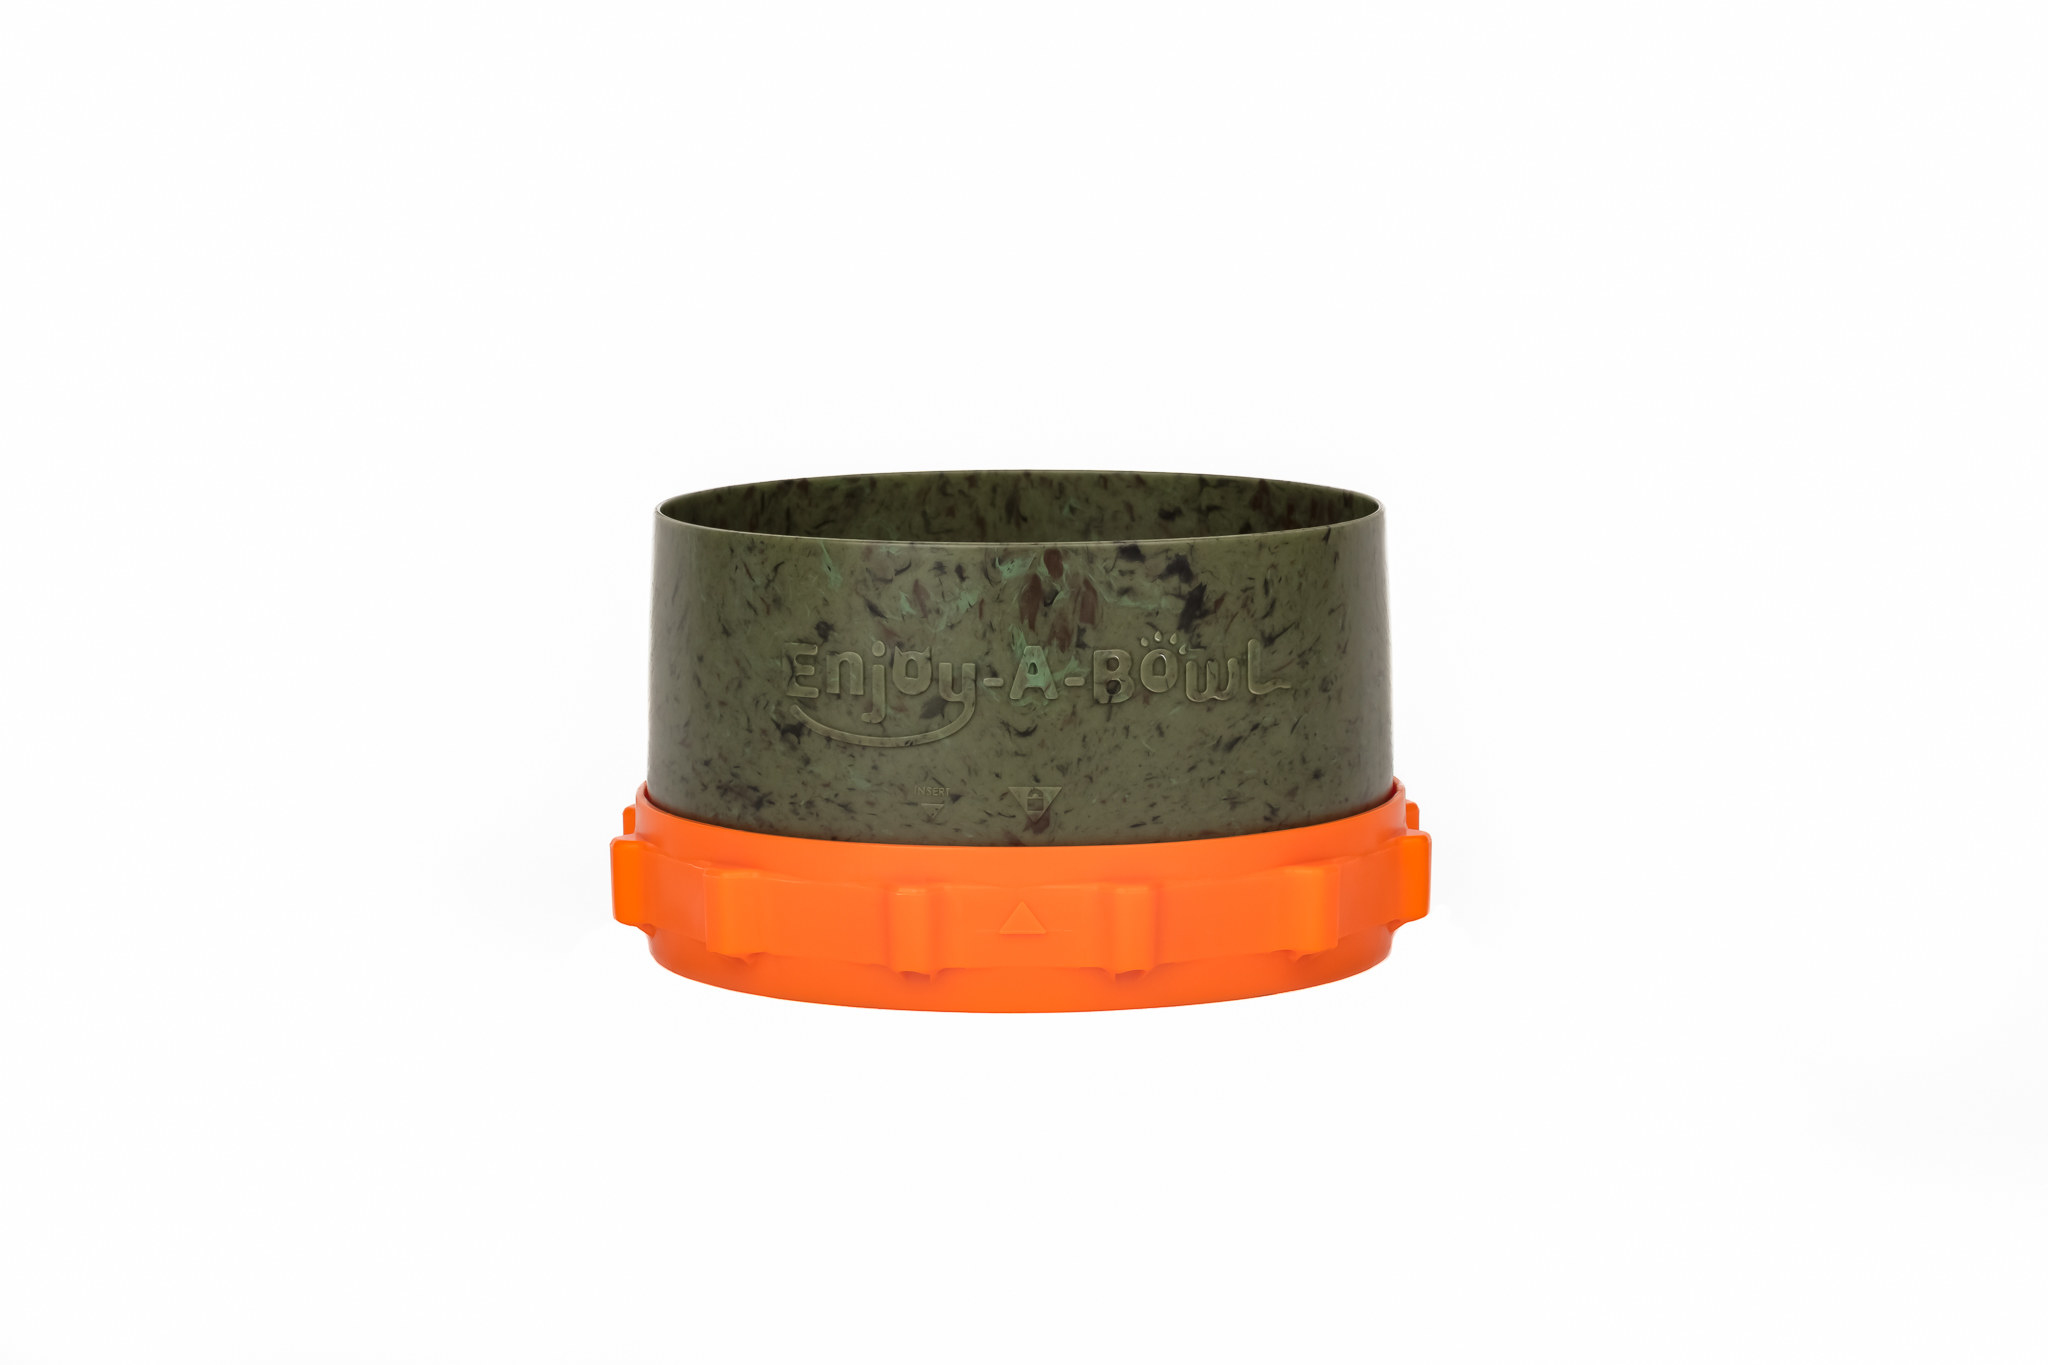 small green pet food bowl with a removable orange compartment on the bottom